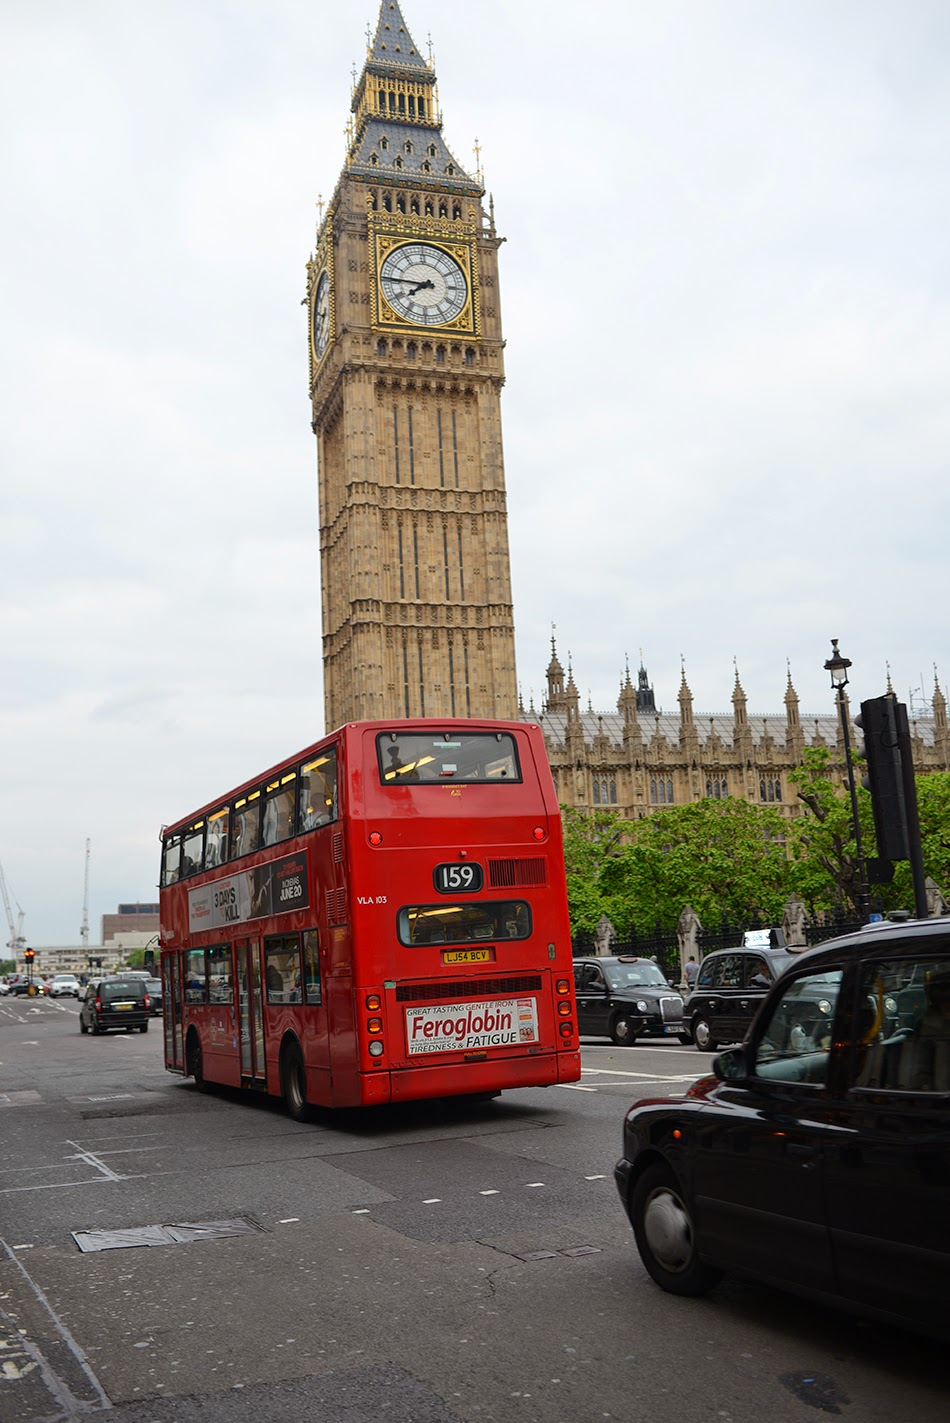 pretty nice a430e 1b25f Arriving back to one of my favorite places EVER,  London. The double decker  red bus s, phone booths and architecture just get me going!